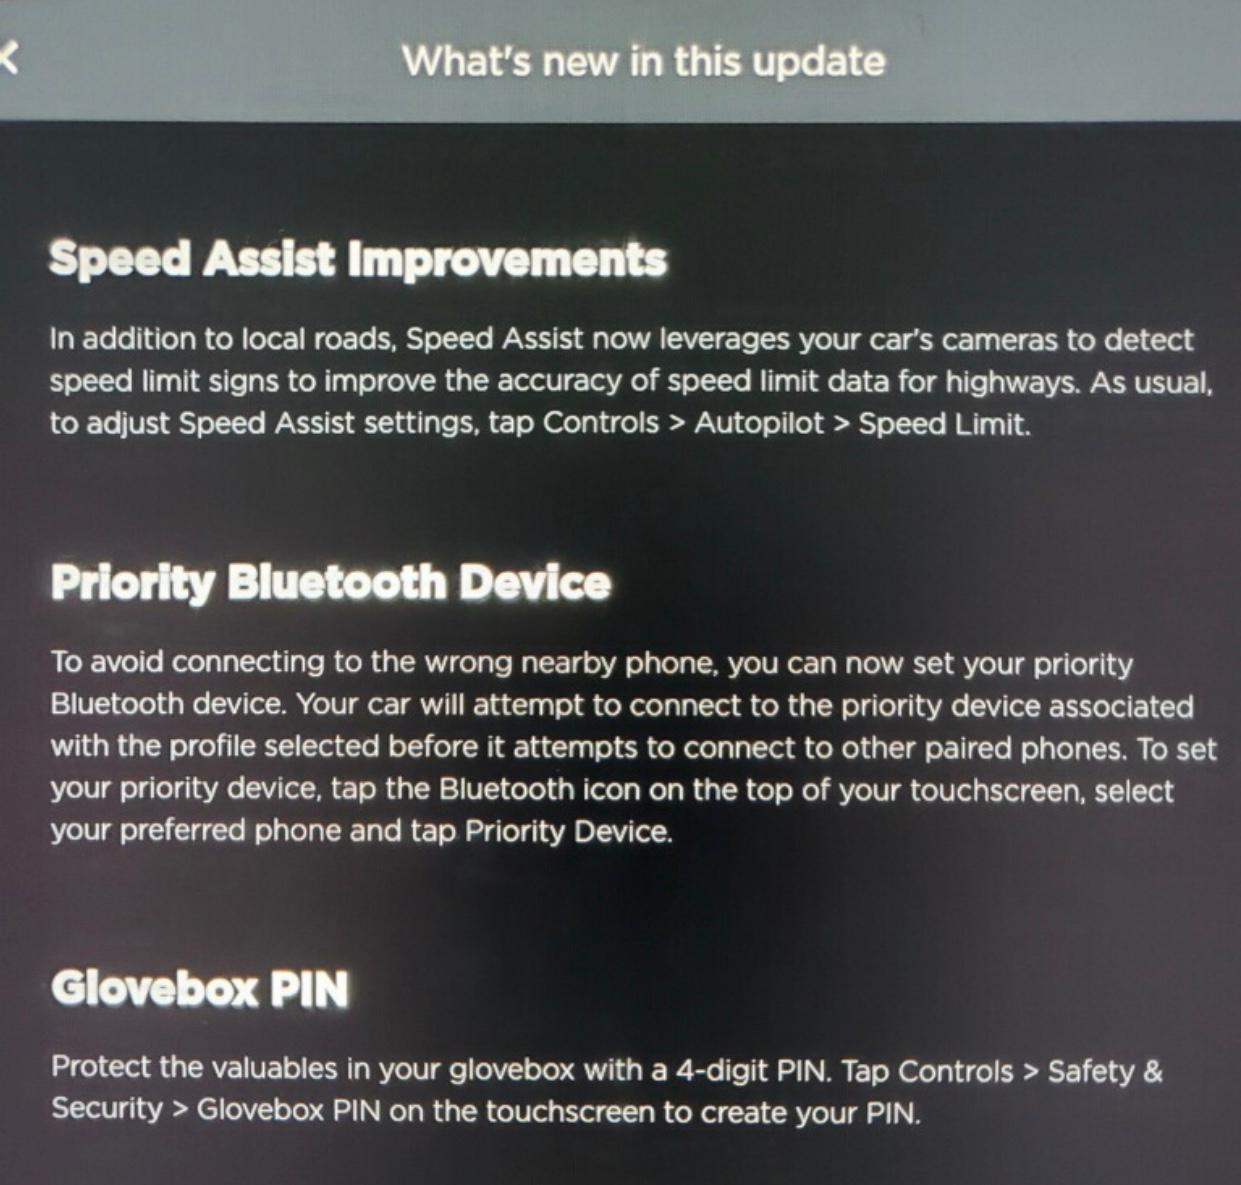 Tesla Releases OTA 2020.40.0.4 Software Update With Glovebox PIN, Charge Port Inlet Heater & More